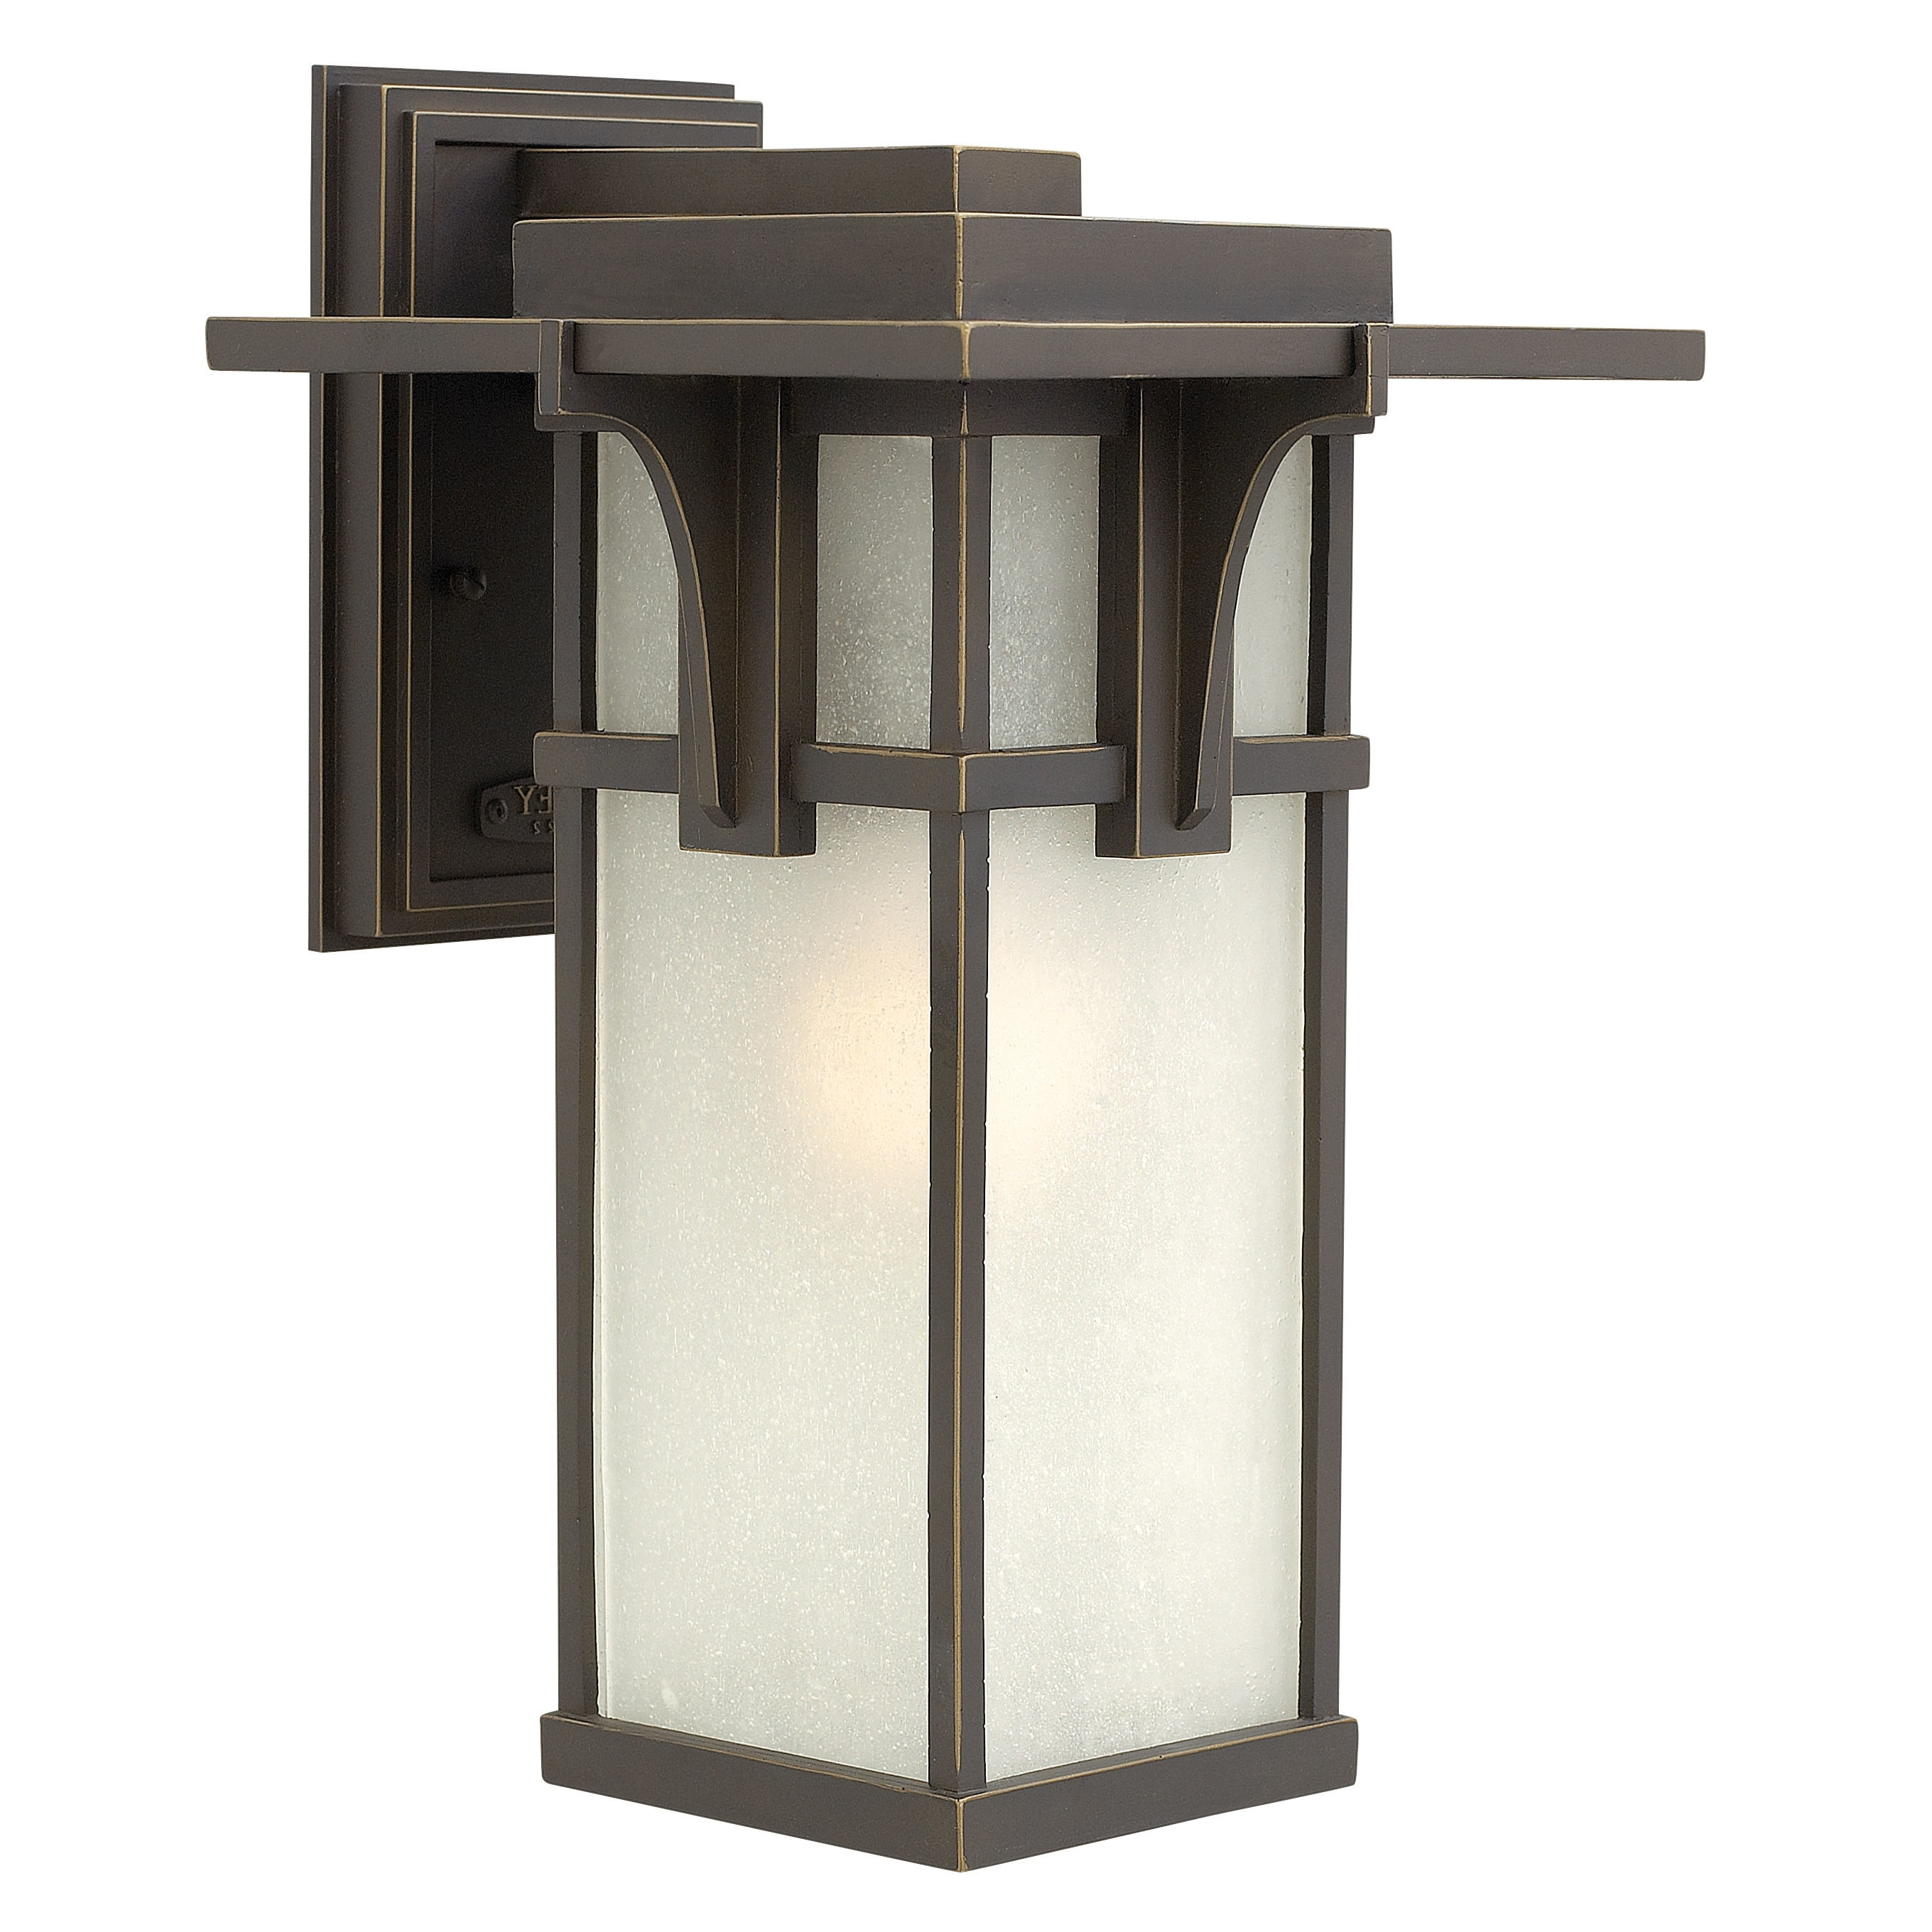 Missionshaker Outdoor Wall Lighting Wayfair Manhattan 1 Light For Most Recently Released Outdoor Lighting Fixtures At Wayfair (View 10 of 20)